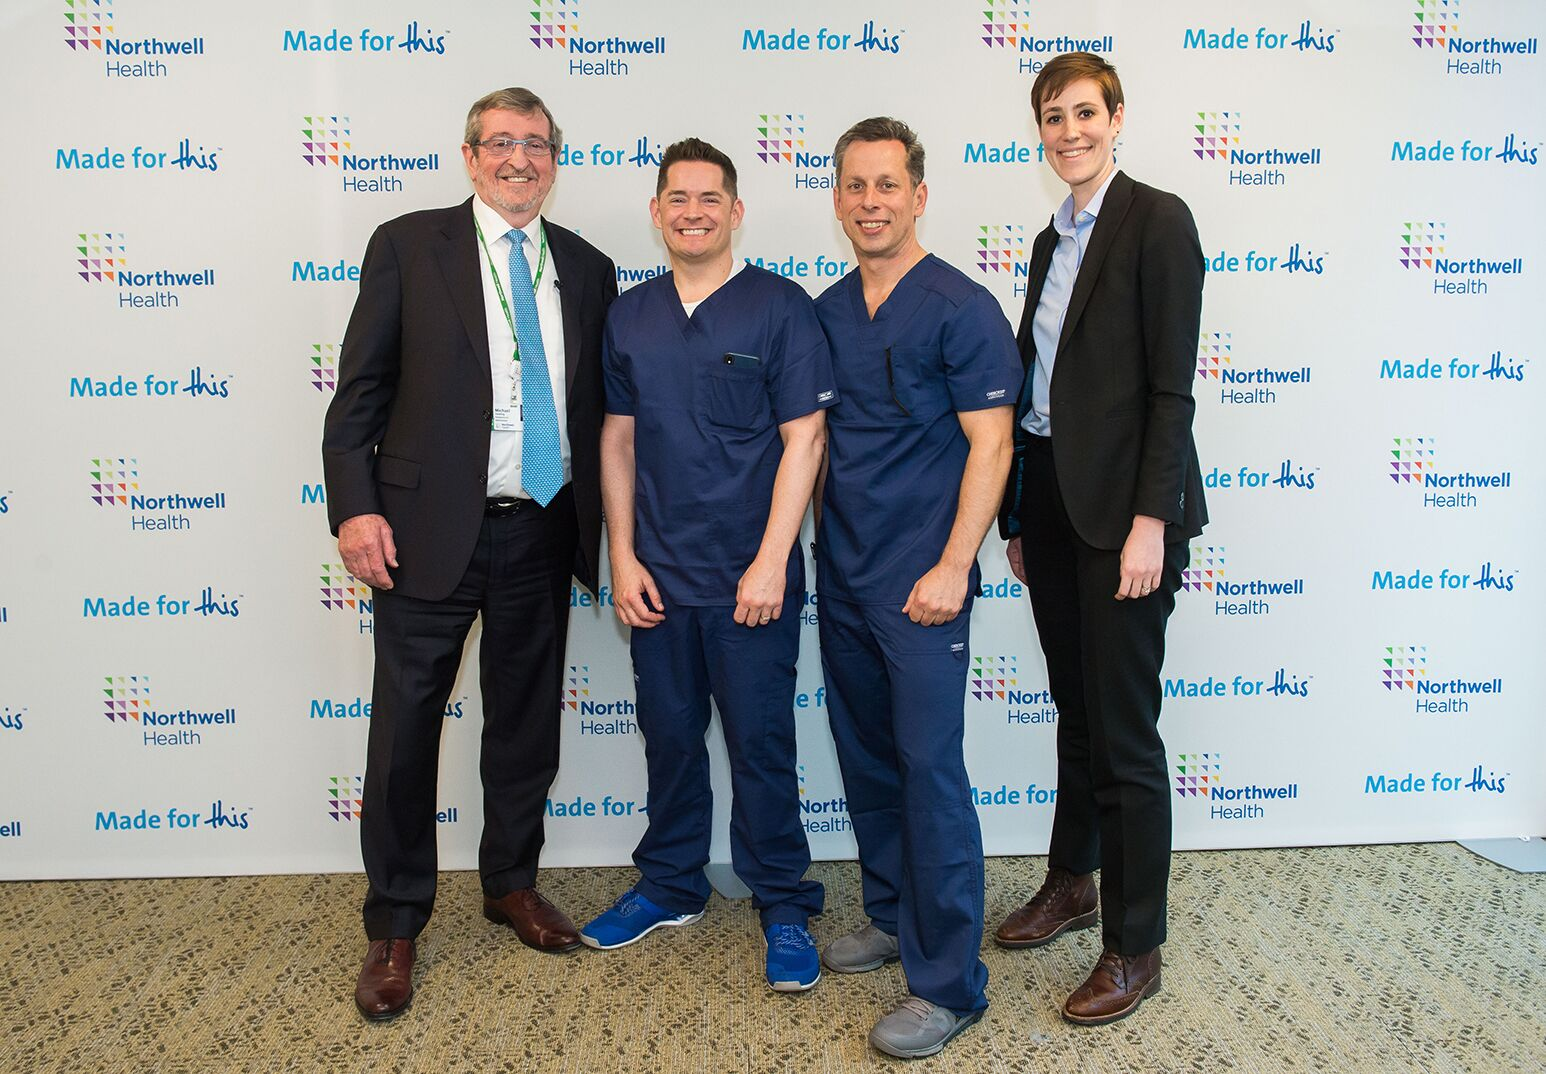 From left: Northwell Health President and CEO Michael Dowling with team leaders Drs. Eric Cruzen and John D'Angelo, whose Real-Time Actionable Data is a reporting tool that gives bedside data about a hospital's emergency department.